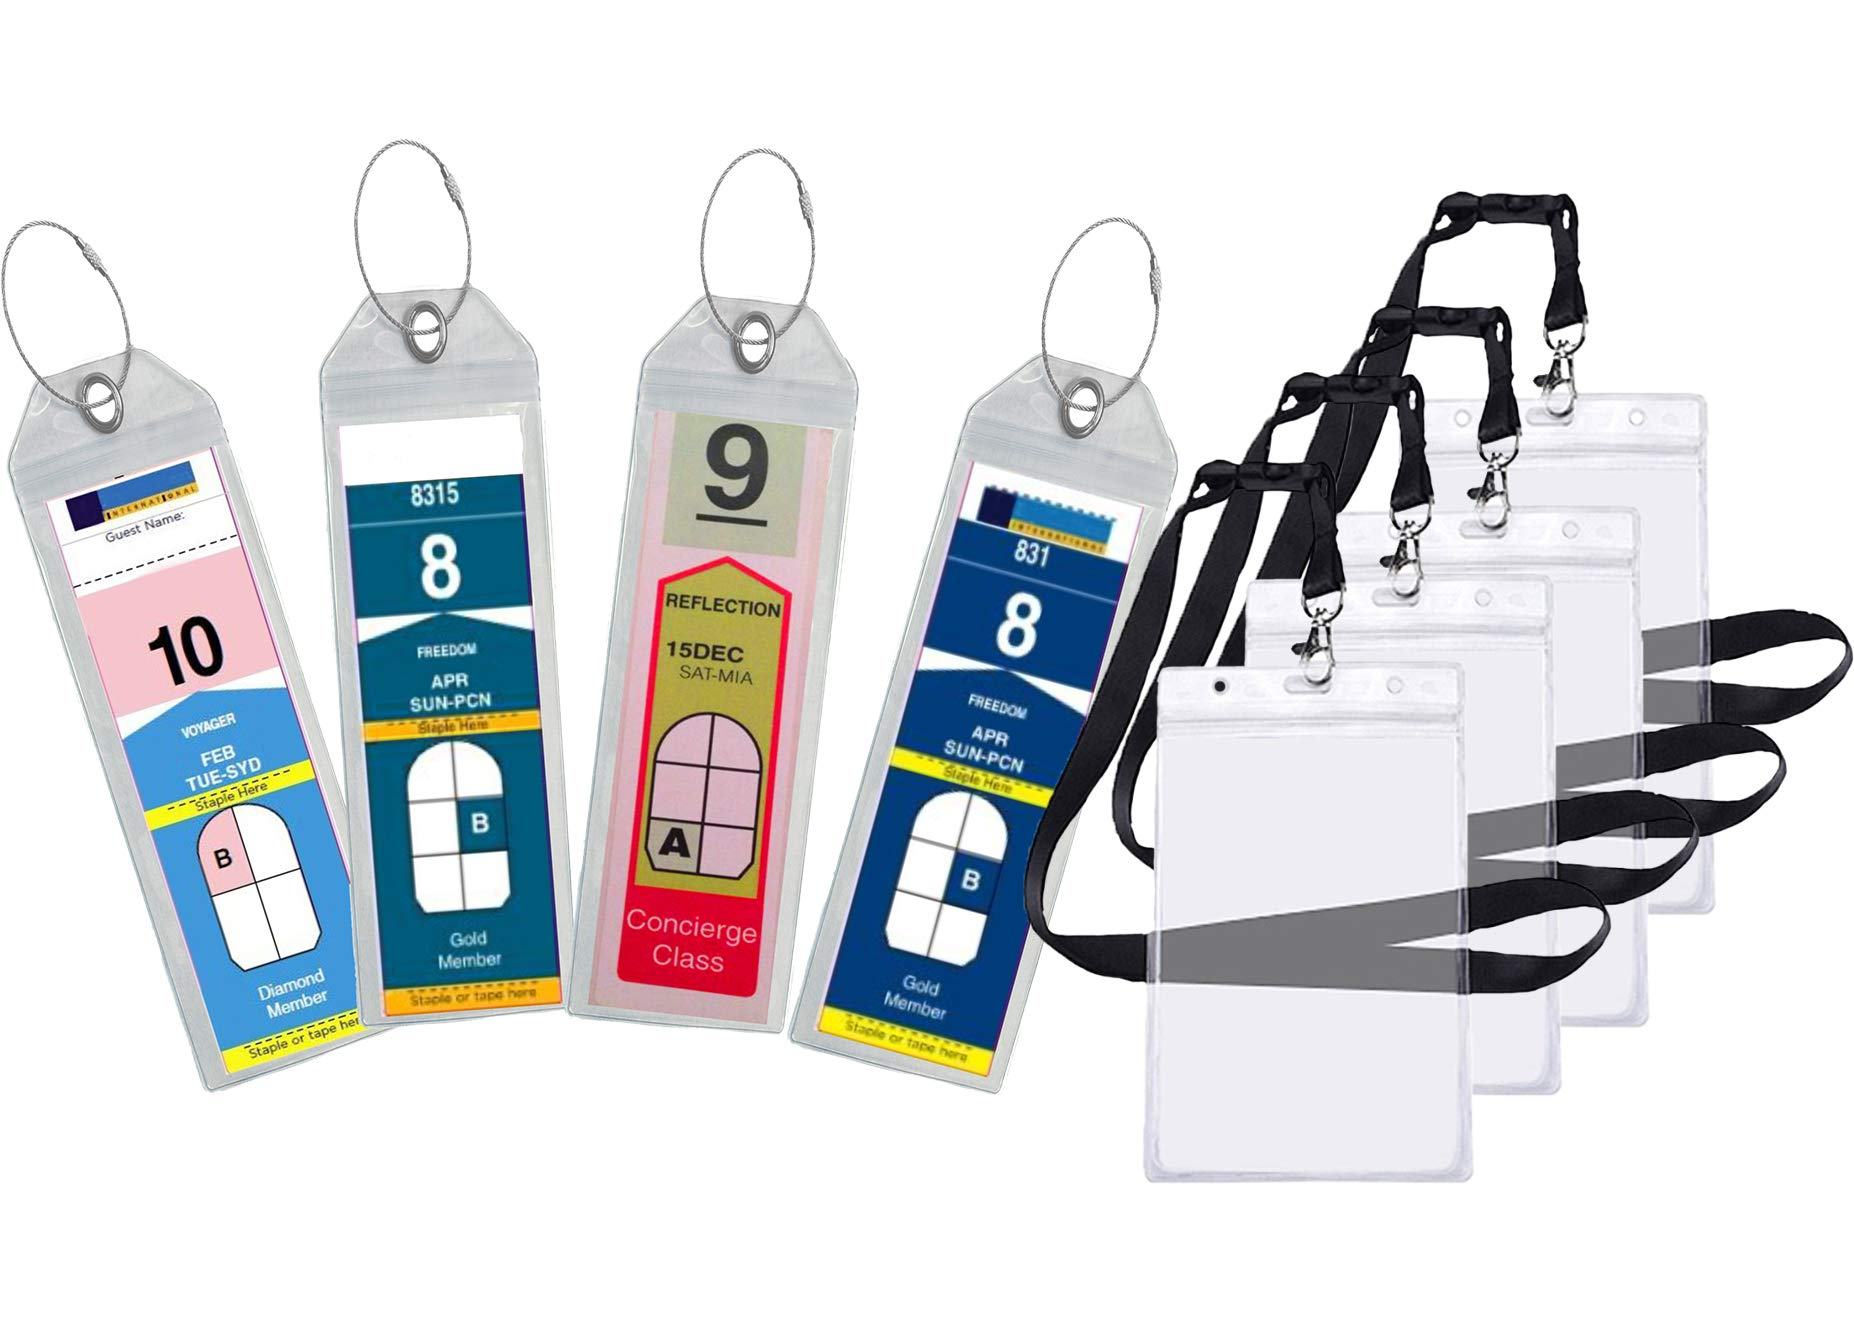 Cruise Luggage Tag Holder Zip Seal & Steel - Royal Caribbean & Celebrity Cruise (8 Pack + 4 ID Holders) by Highwind